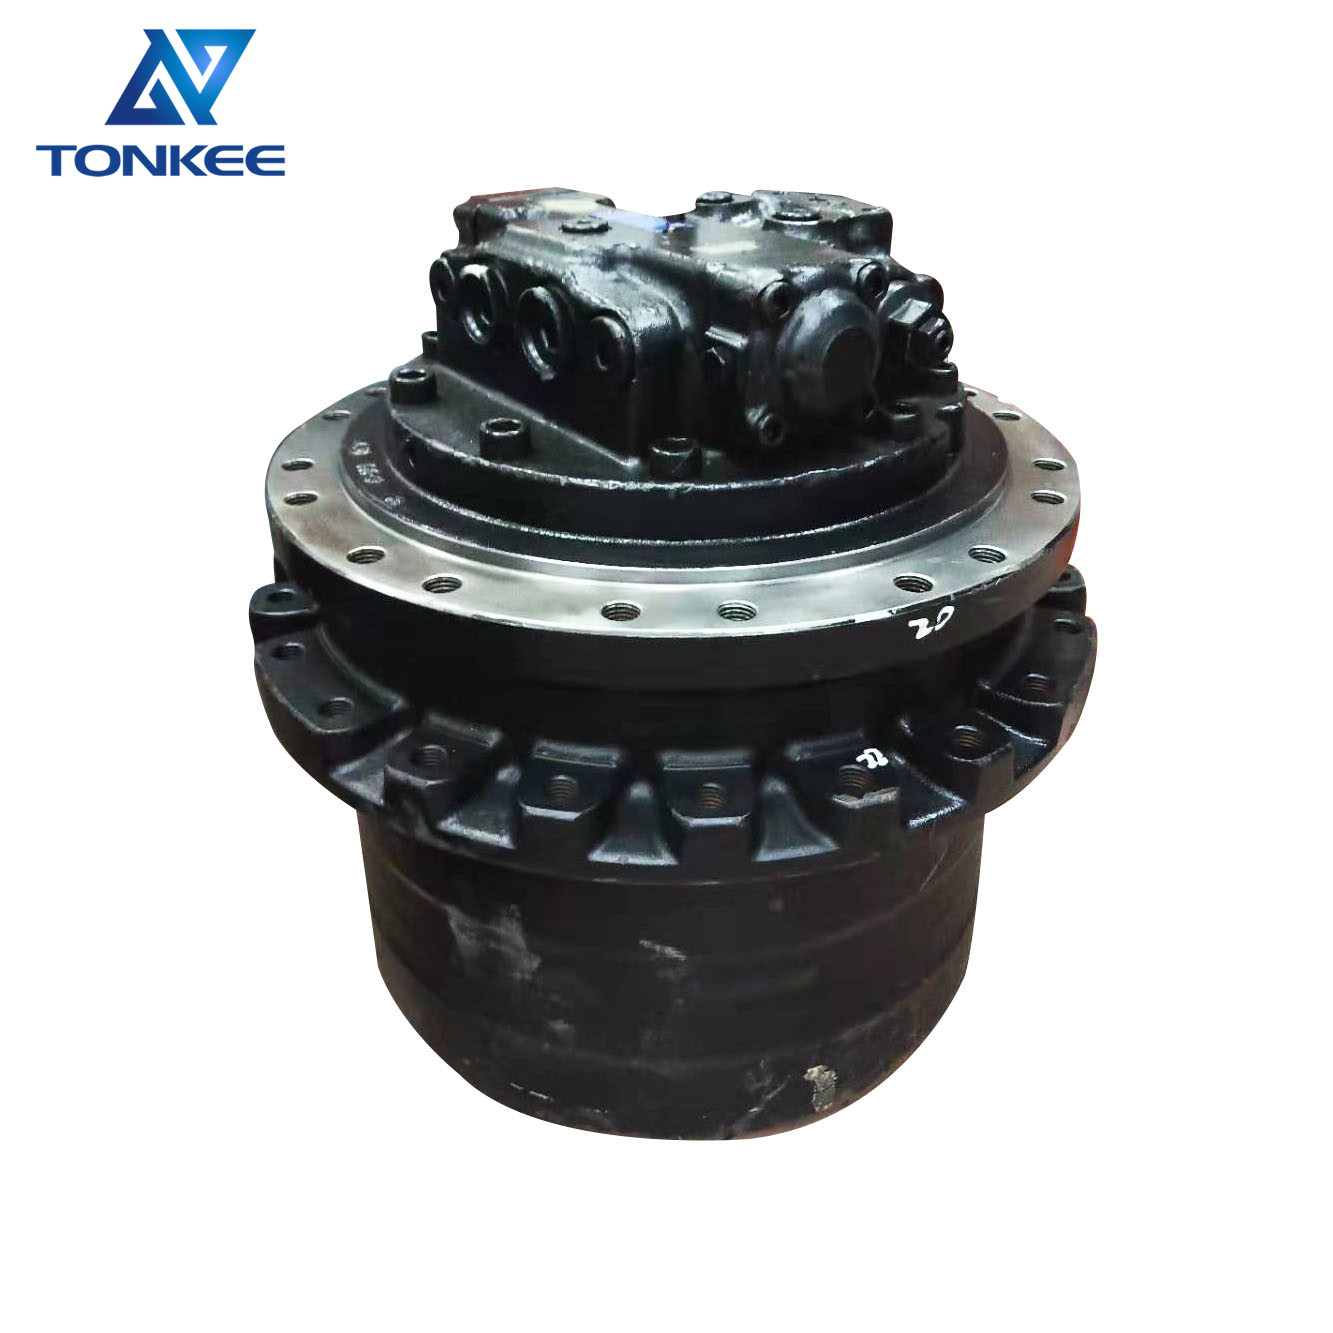 SK130LC SK140 CX160 315B final drive group 1484570 1362798 LP15V00006F2 LP15V00001F1 KYB MAG-85VP-2400 MAG85VP2400E propel travel motor assy